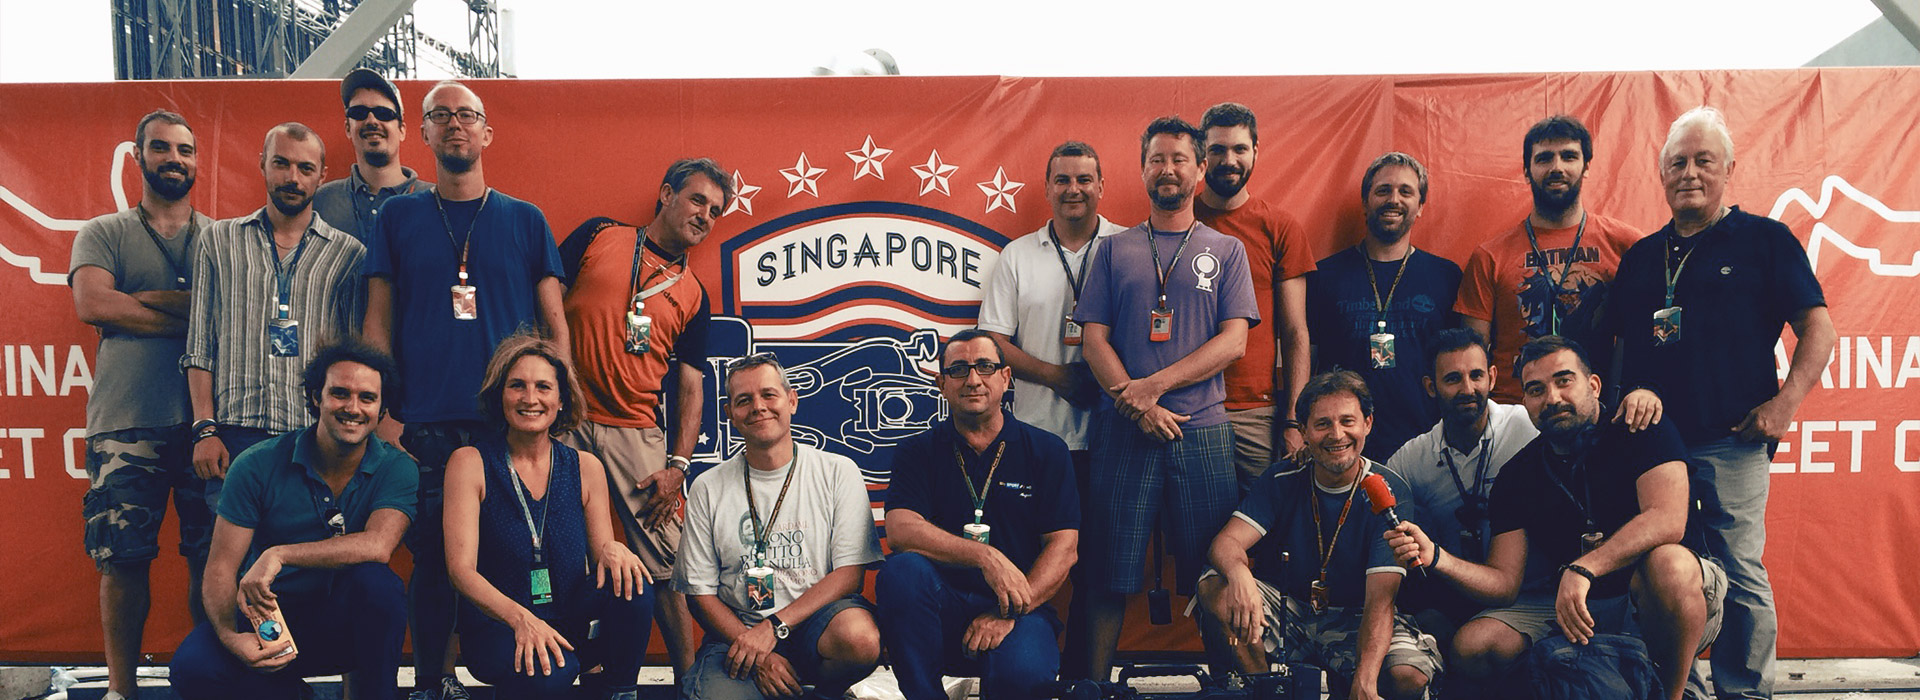 Il team di Videe a Singapore